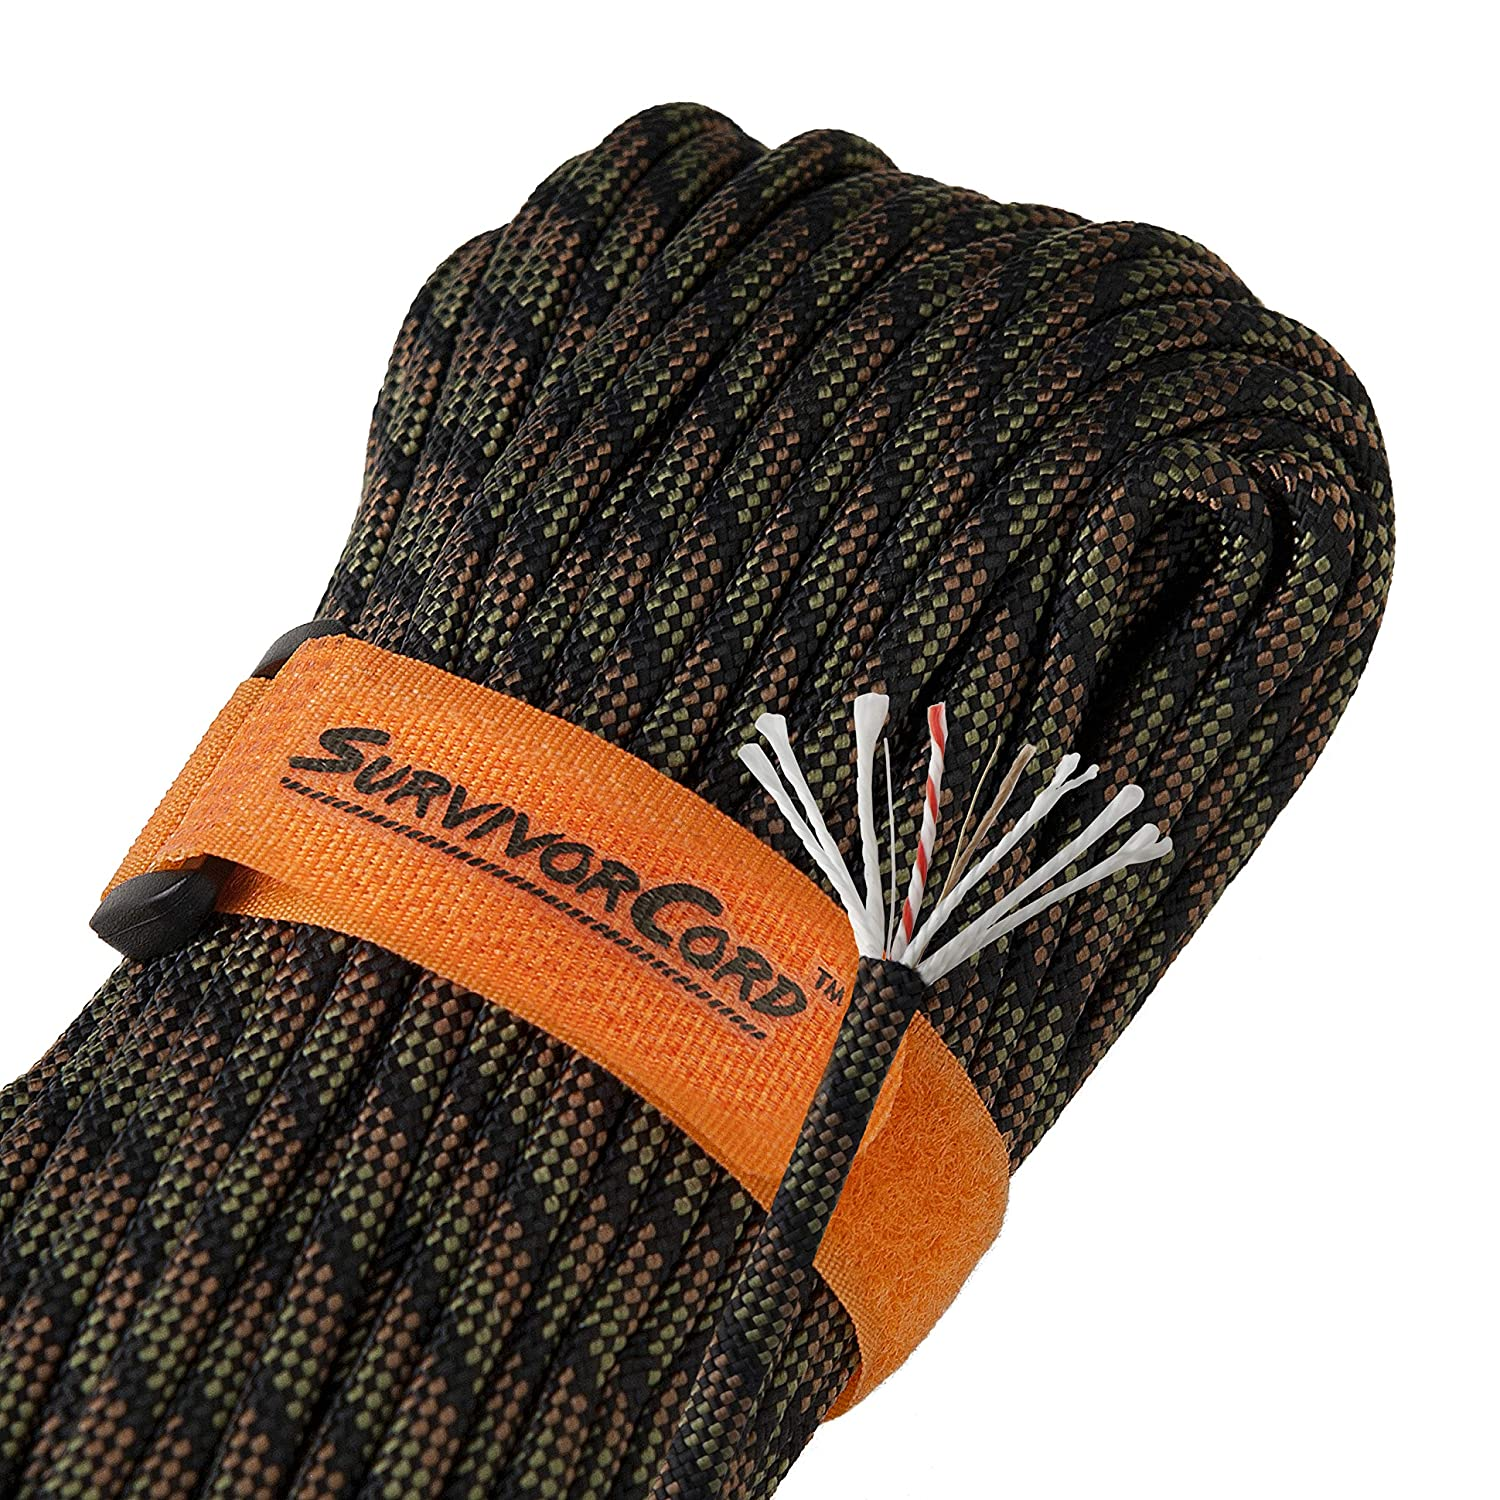 Military Type III 550 Parachute Cord Titan 620 LB SurvivorCord Paracord Fire-Starter Tinder MIL-C-5040H w//Free Ebooks and Utility Wire TITAN Paracord | Patented U.S with Integrated Fishing Line 100/% Nylon